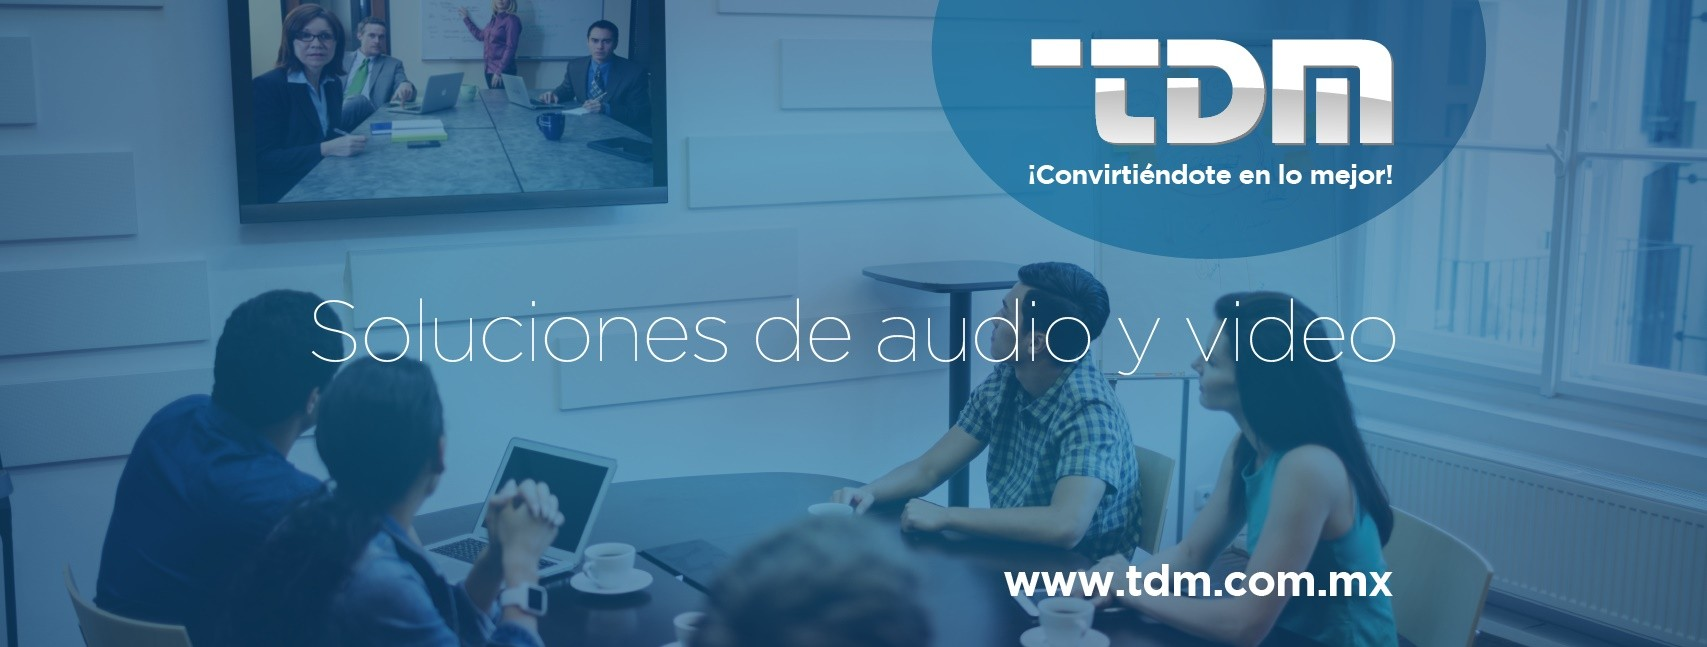 TDM VIDEO | LinkedIn